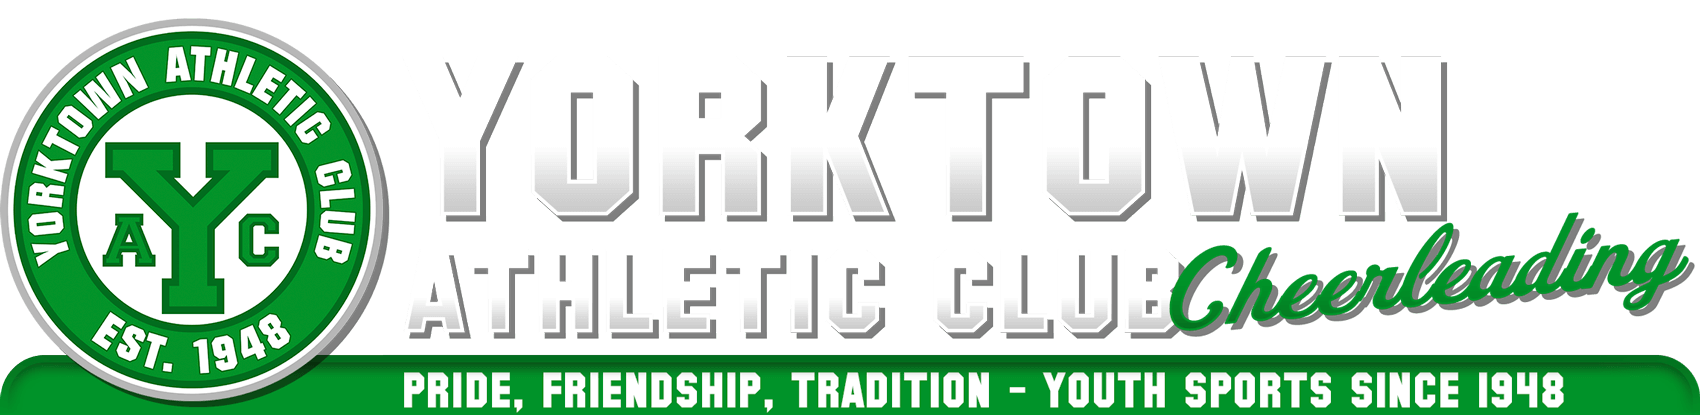 Yorktown Athletic Club, Cheerleading, Cheerleading, Goal, Field